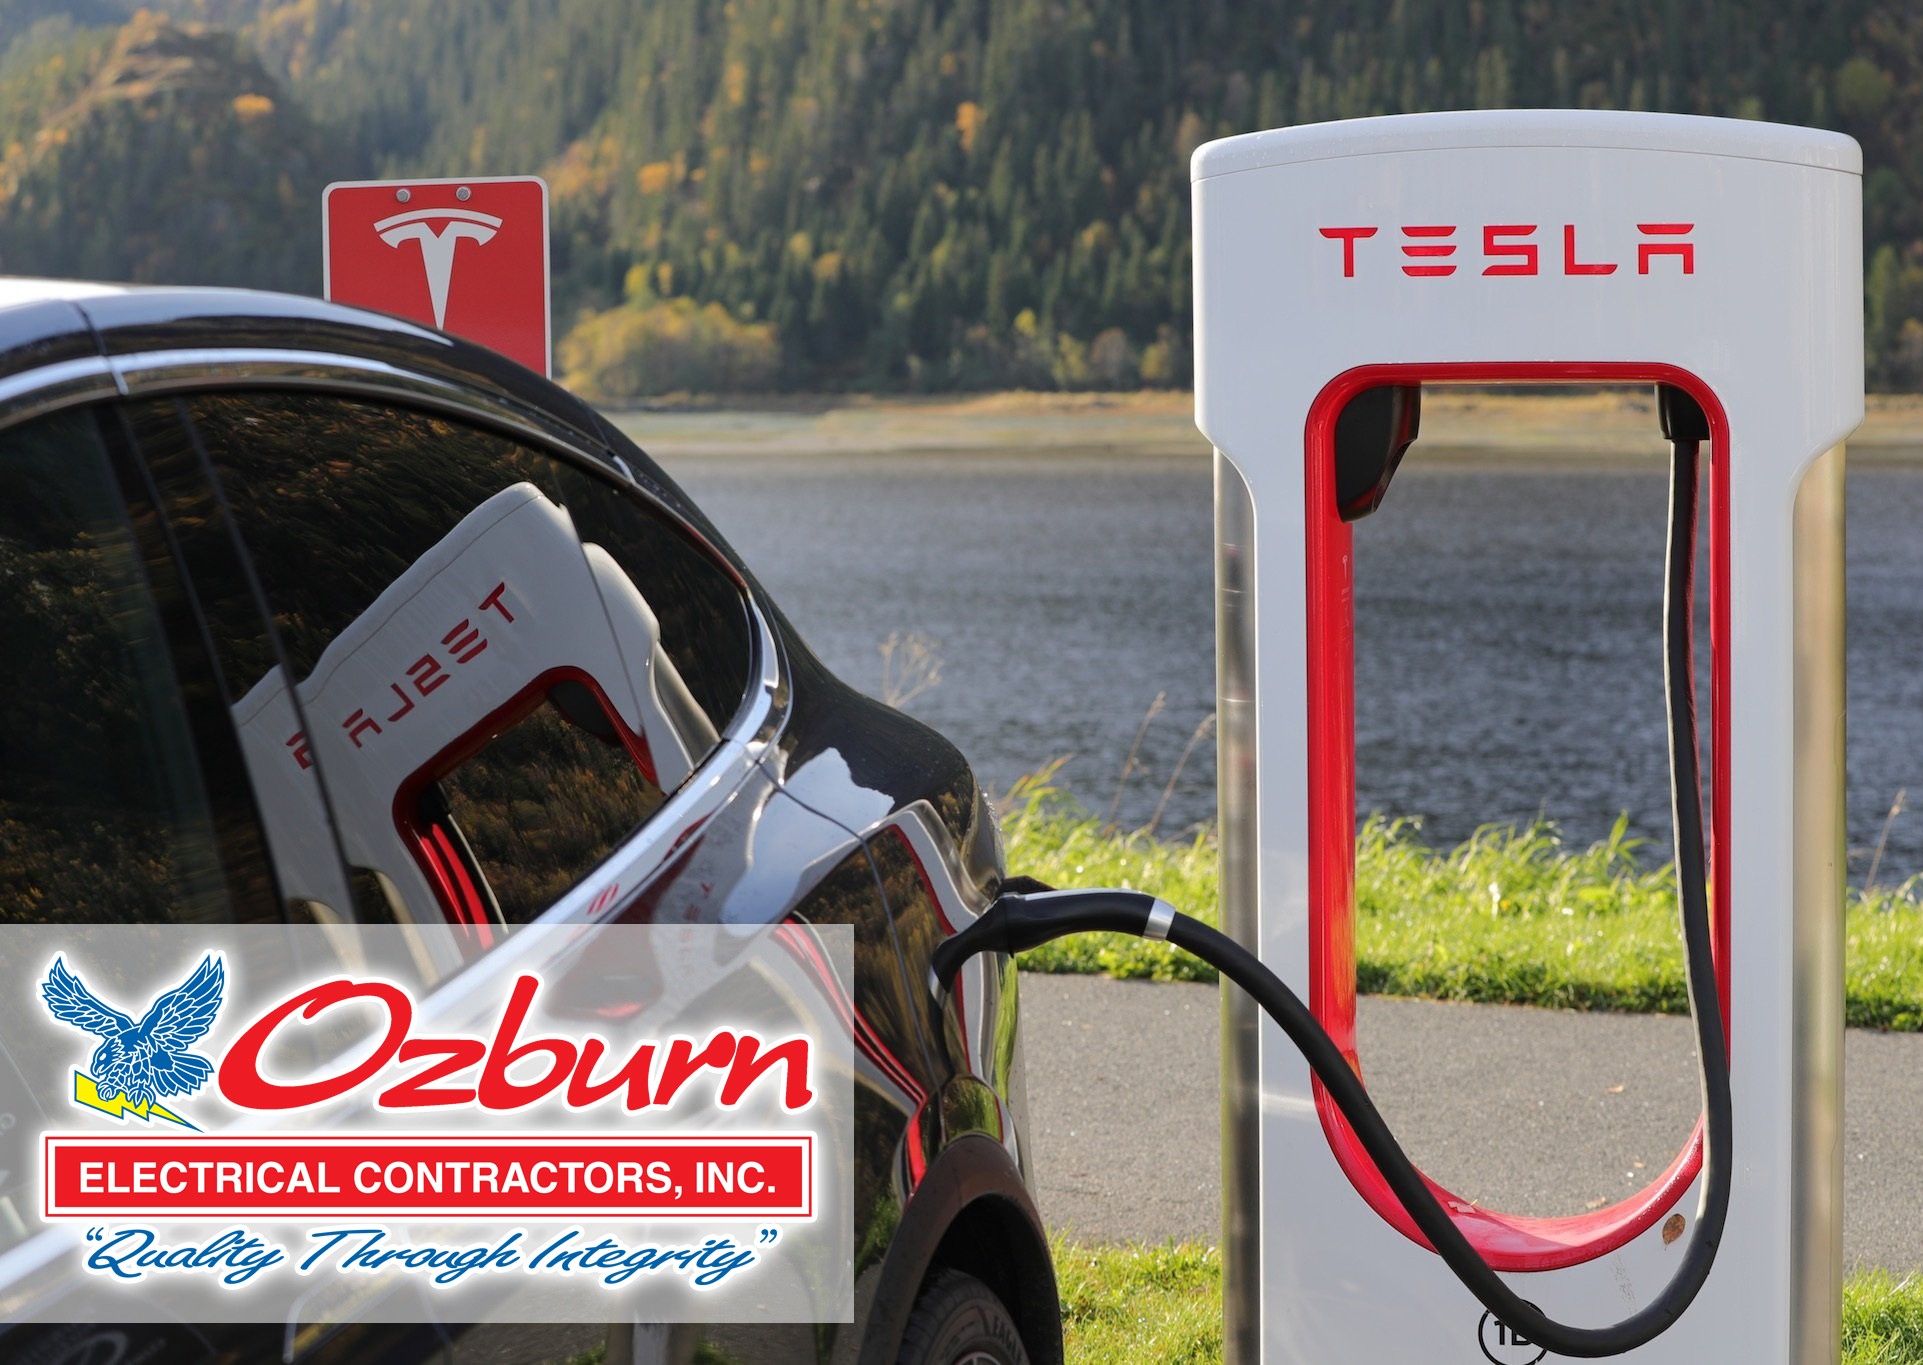 Ozburn Electric can install your electric vehicle charger